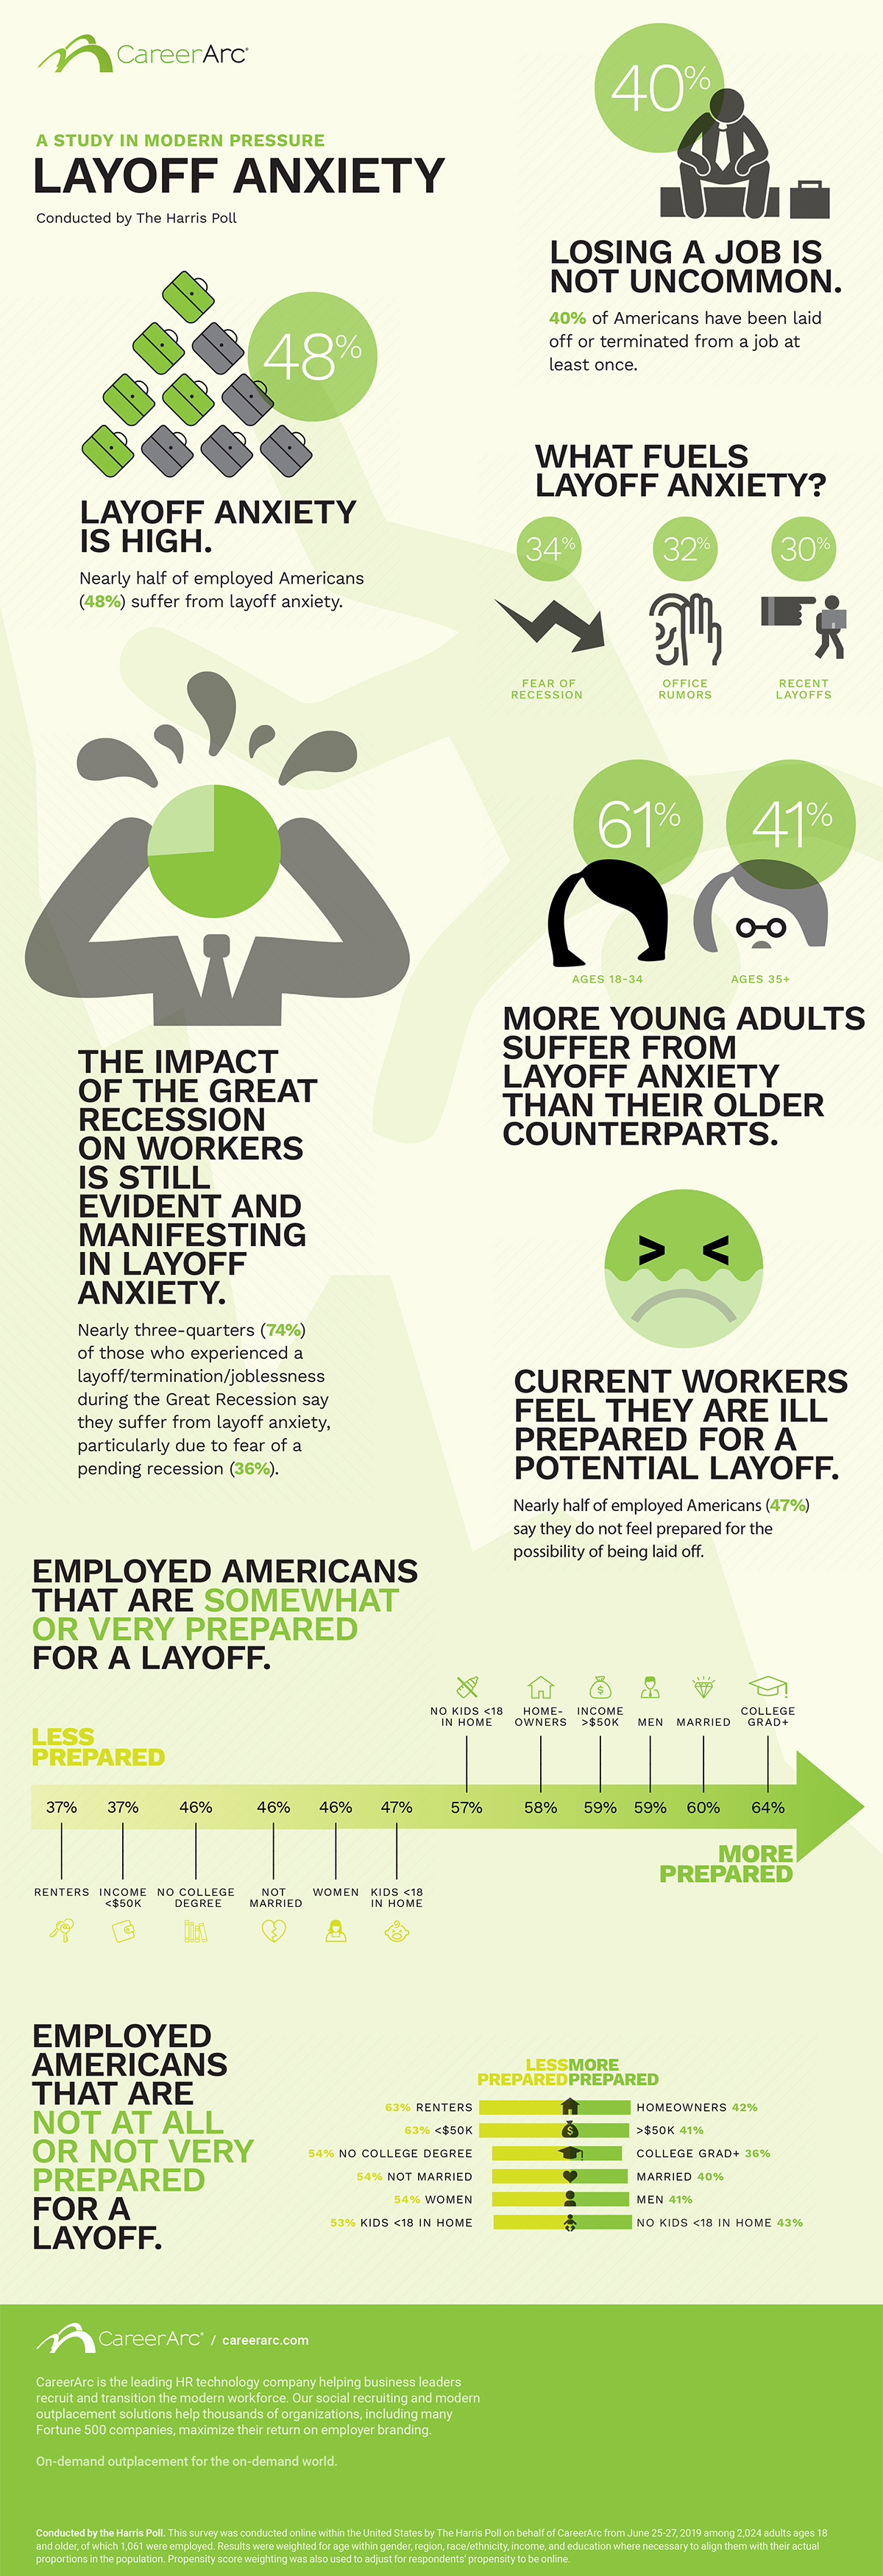 CareerArc layoff anxiety infographic